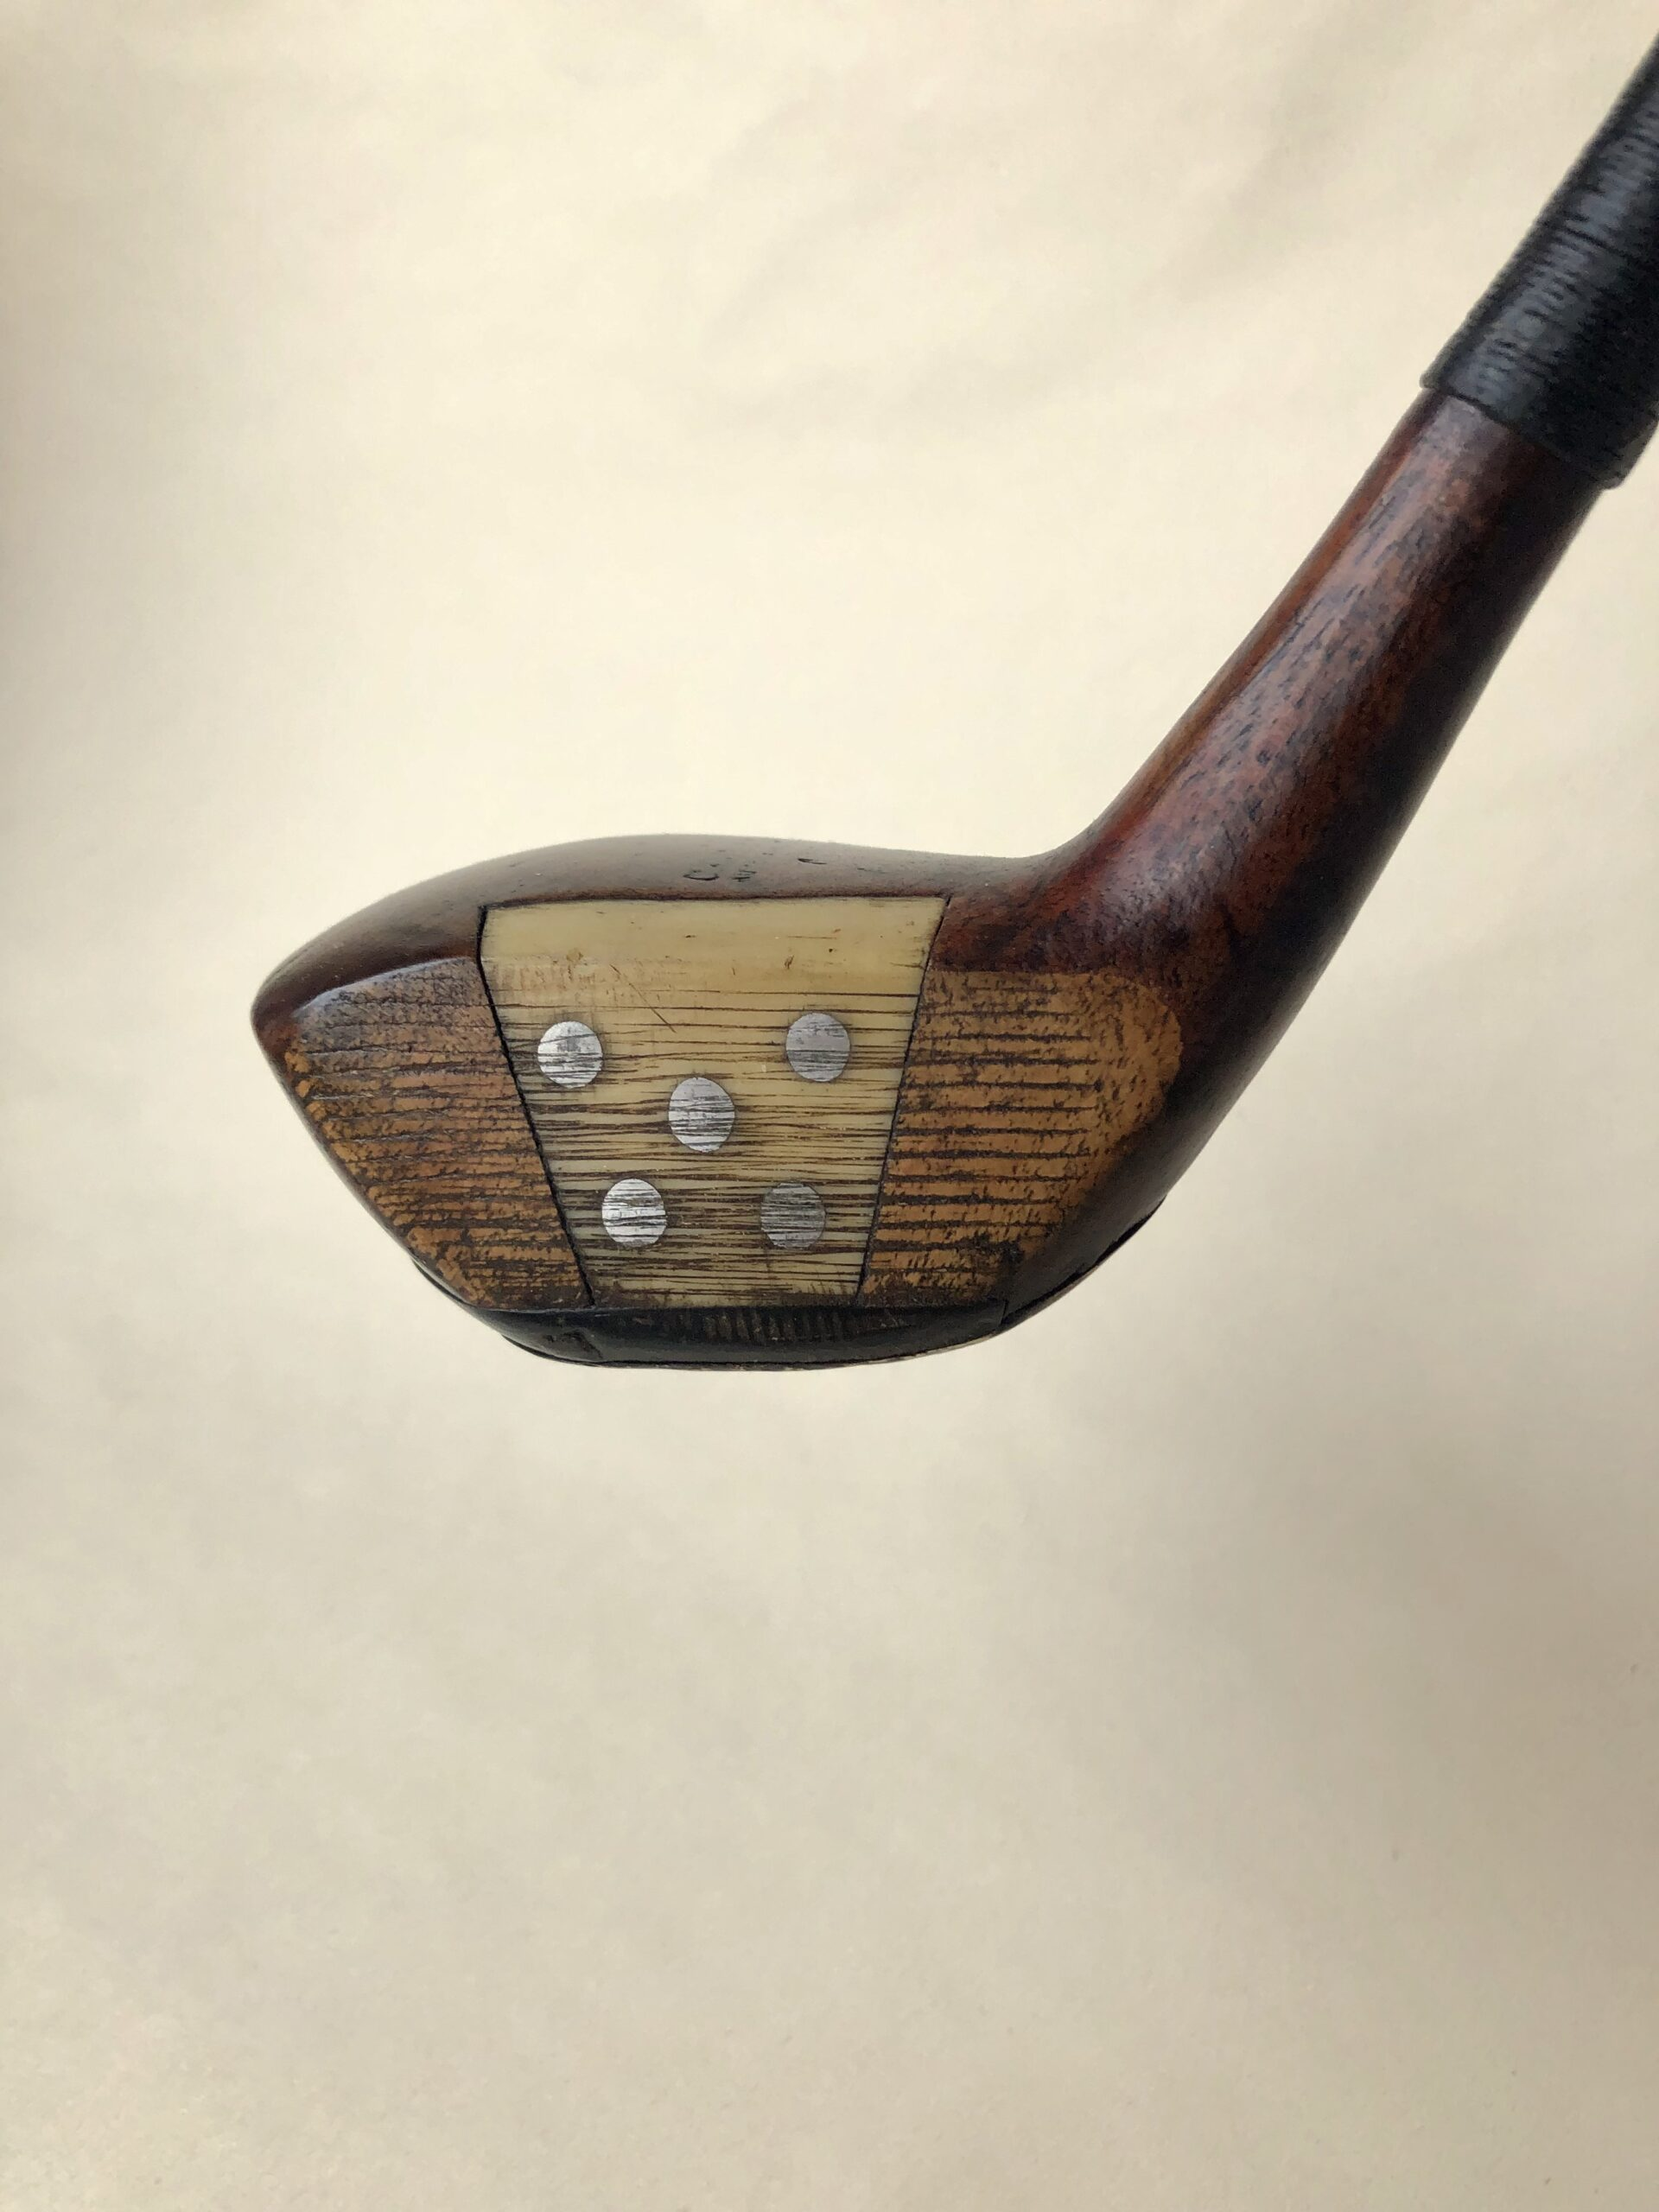 Cann & Taylor 'Autograph' Brassie with fancy face insert